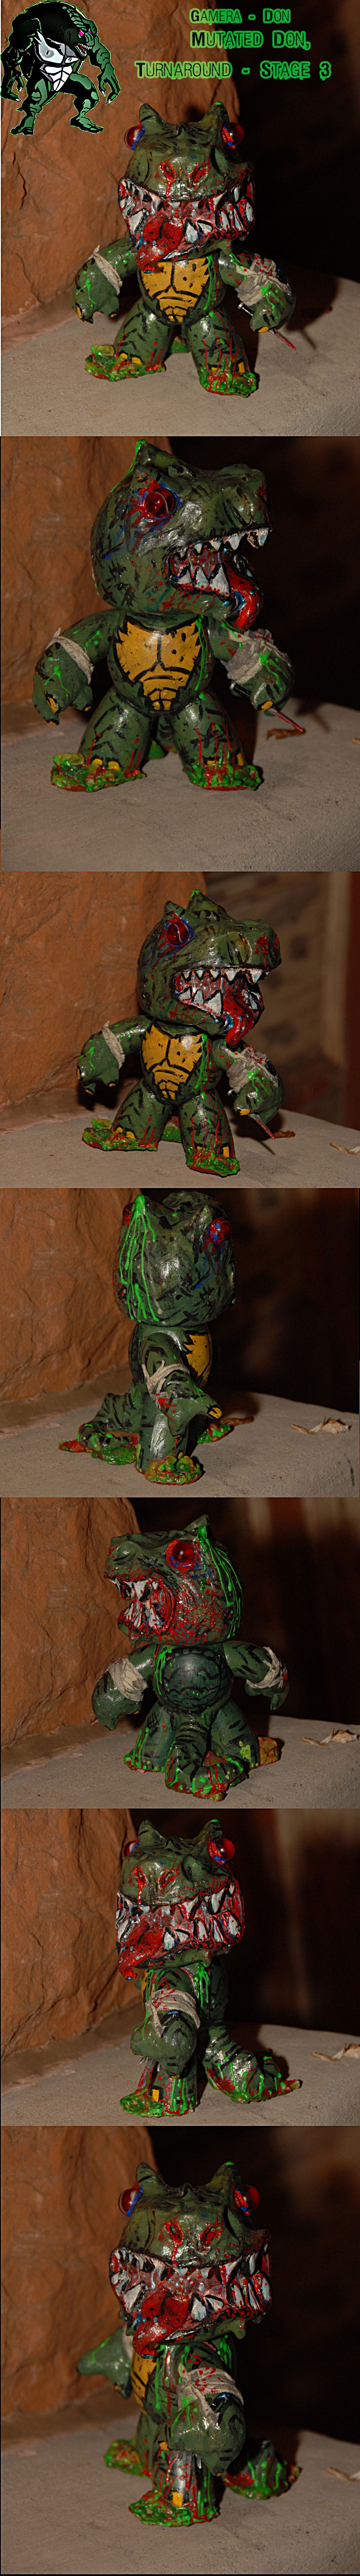 tOkKA Muggs WAVE 2.0 :: Gamera - Don { Mutated Don - Stage 3 } final  //  Turnaround